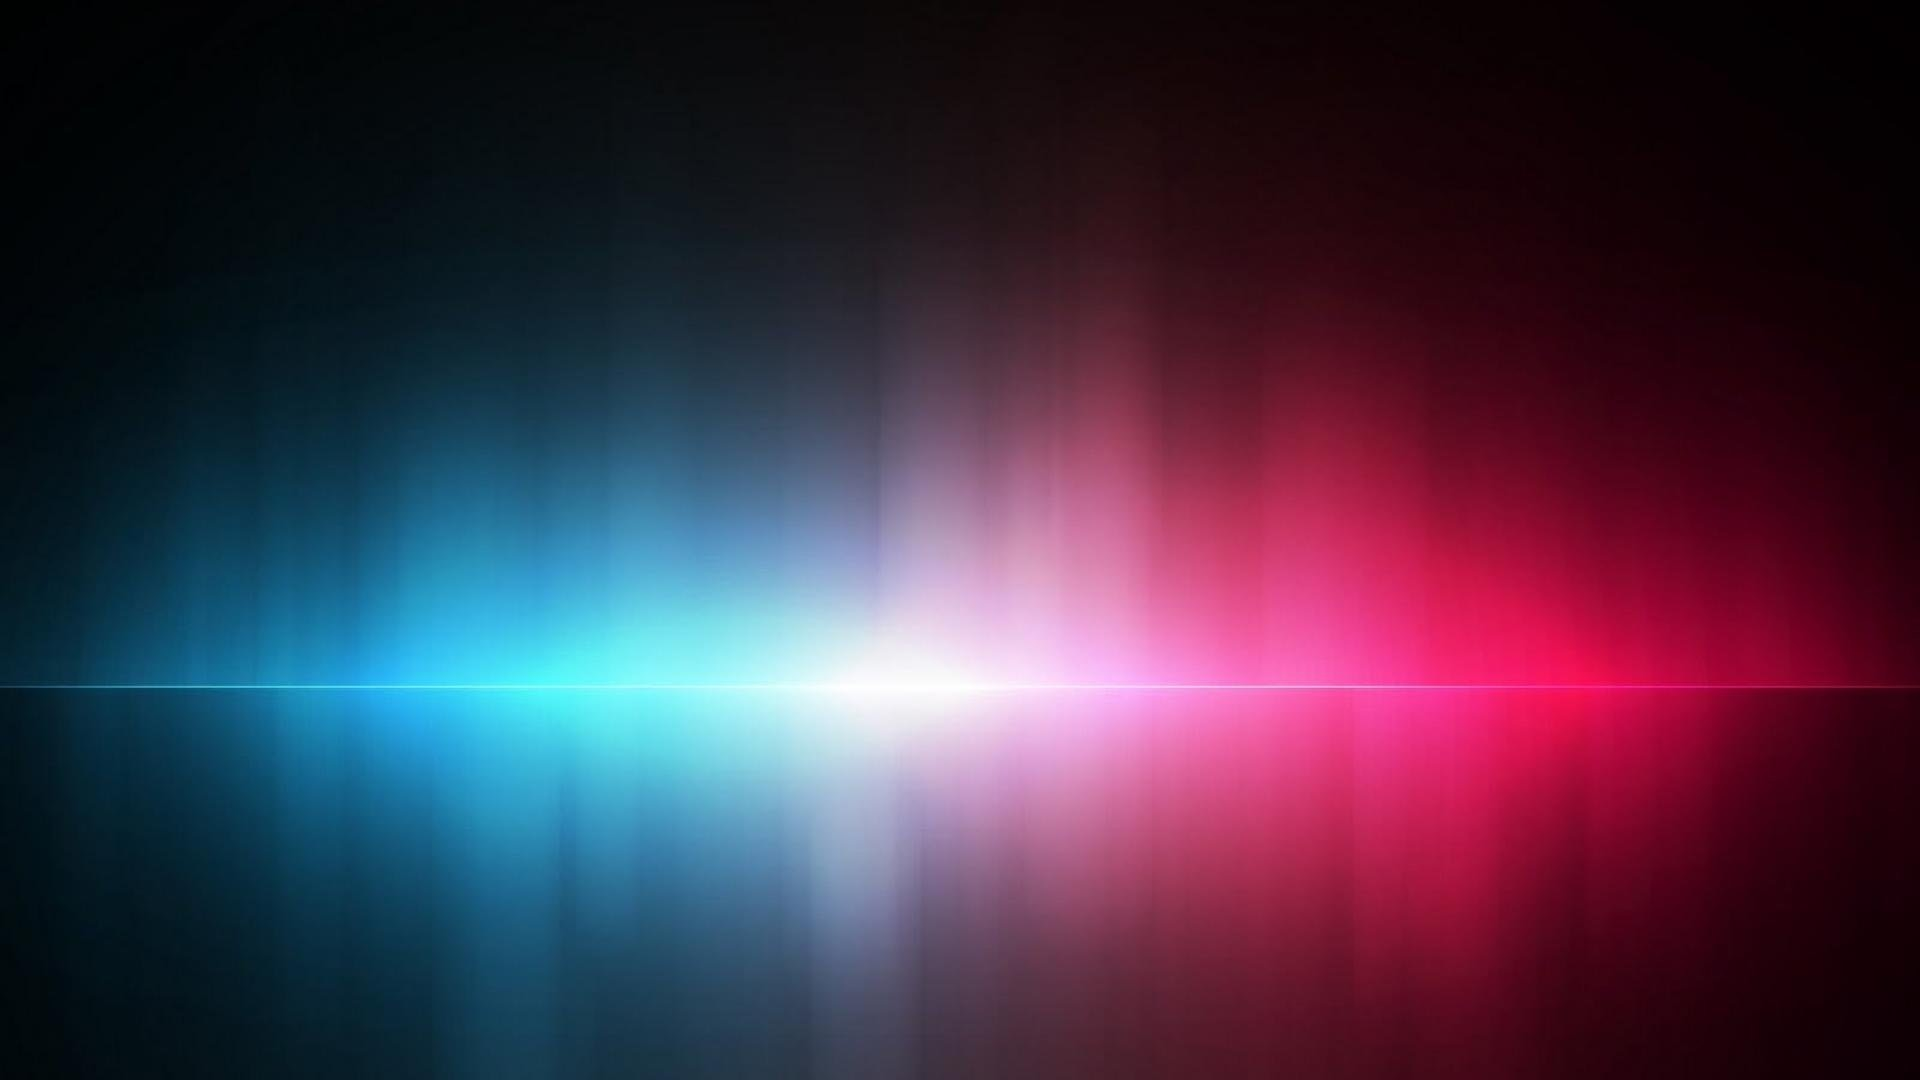 Blue And Pink Background 537811